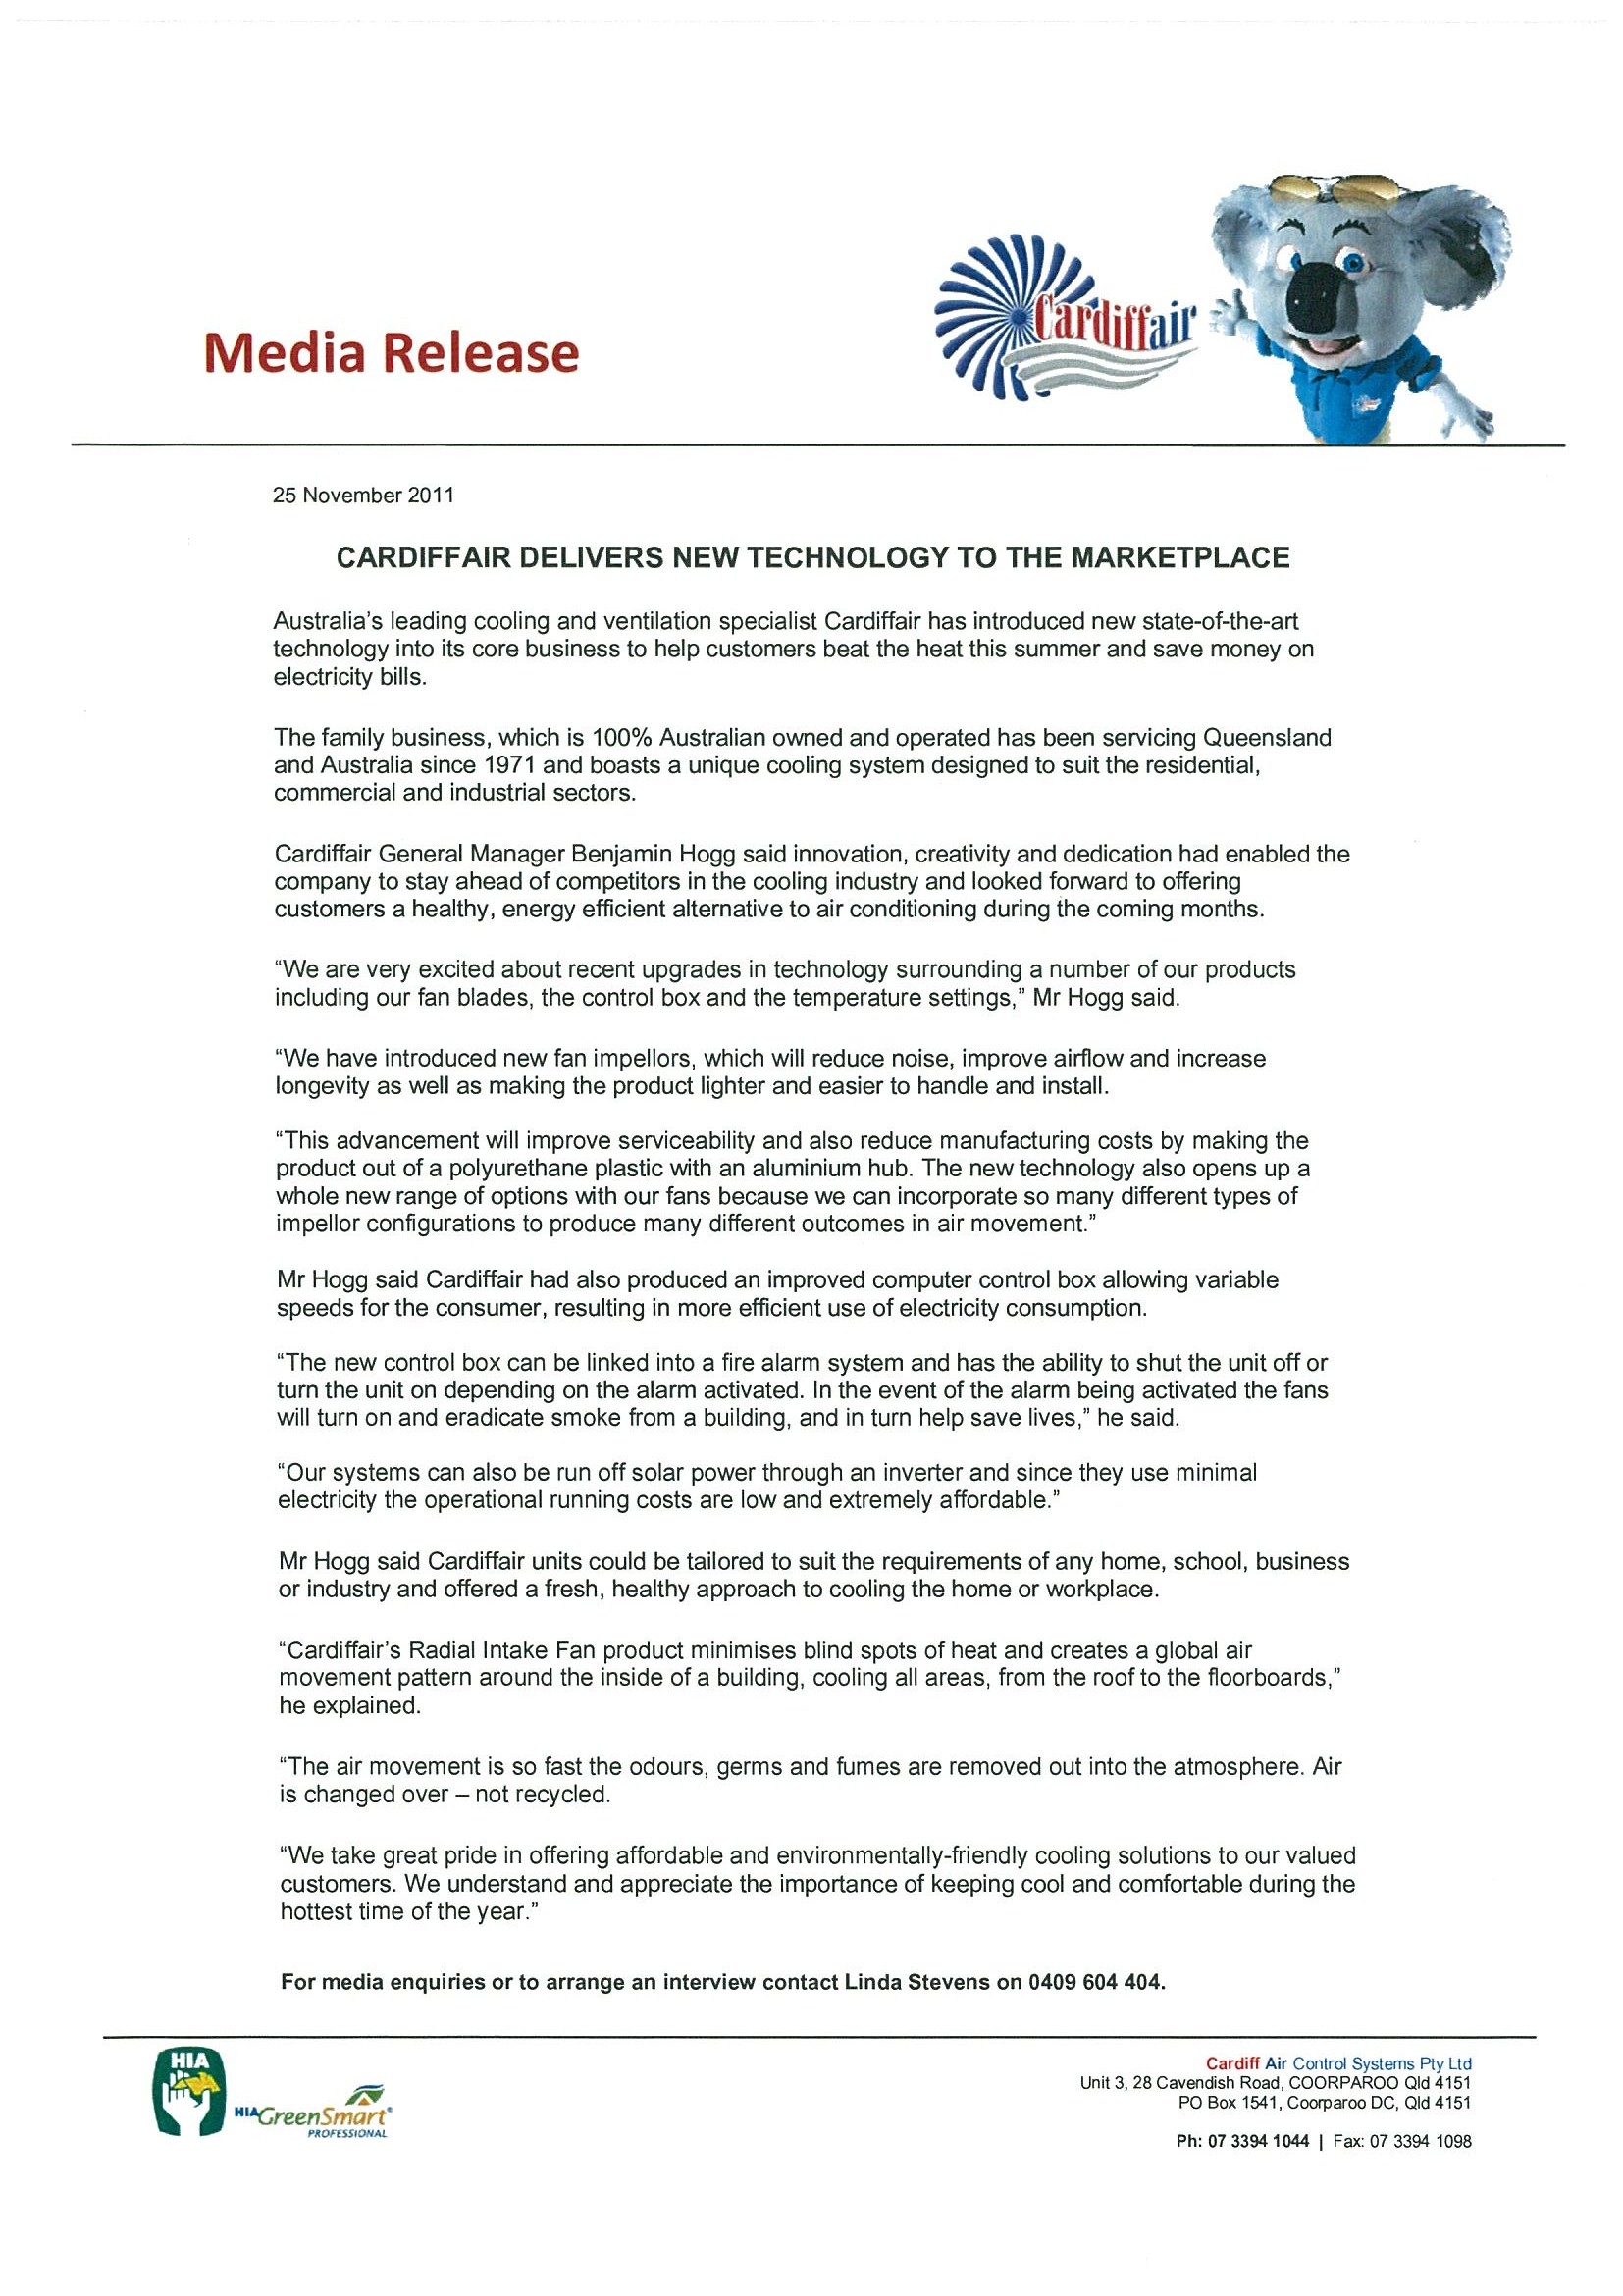 Media Release 1 New Technology 251111 Cardiff Air